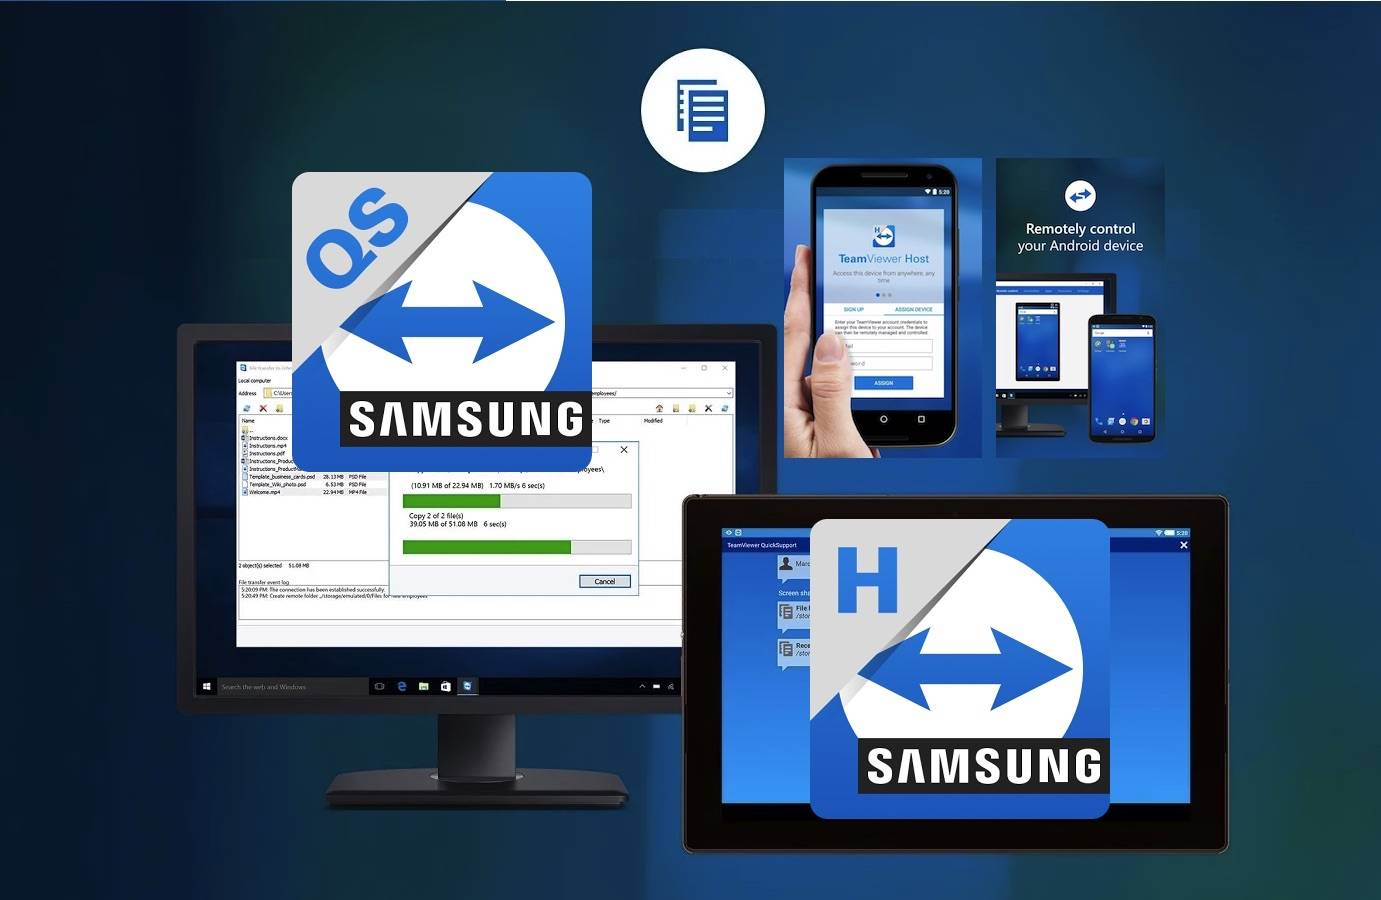 TeamViewer intros new QuickSupport and Host apps for Samsung